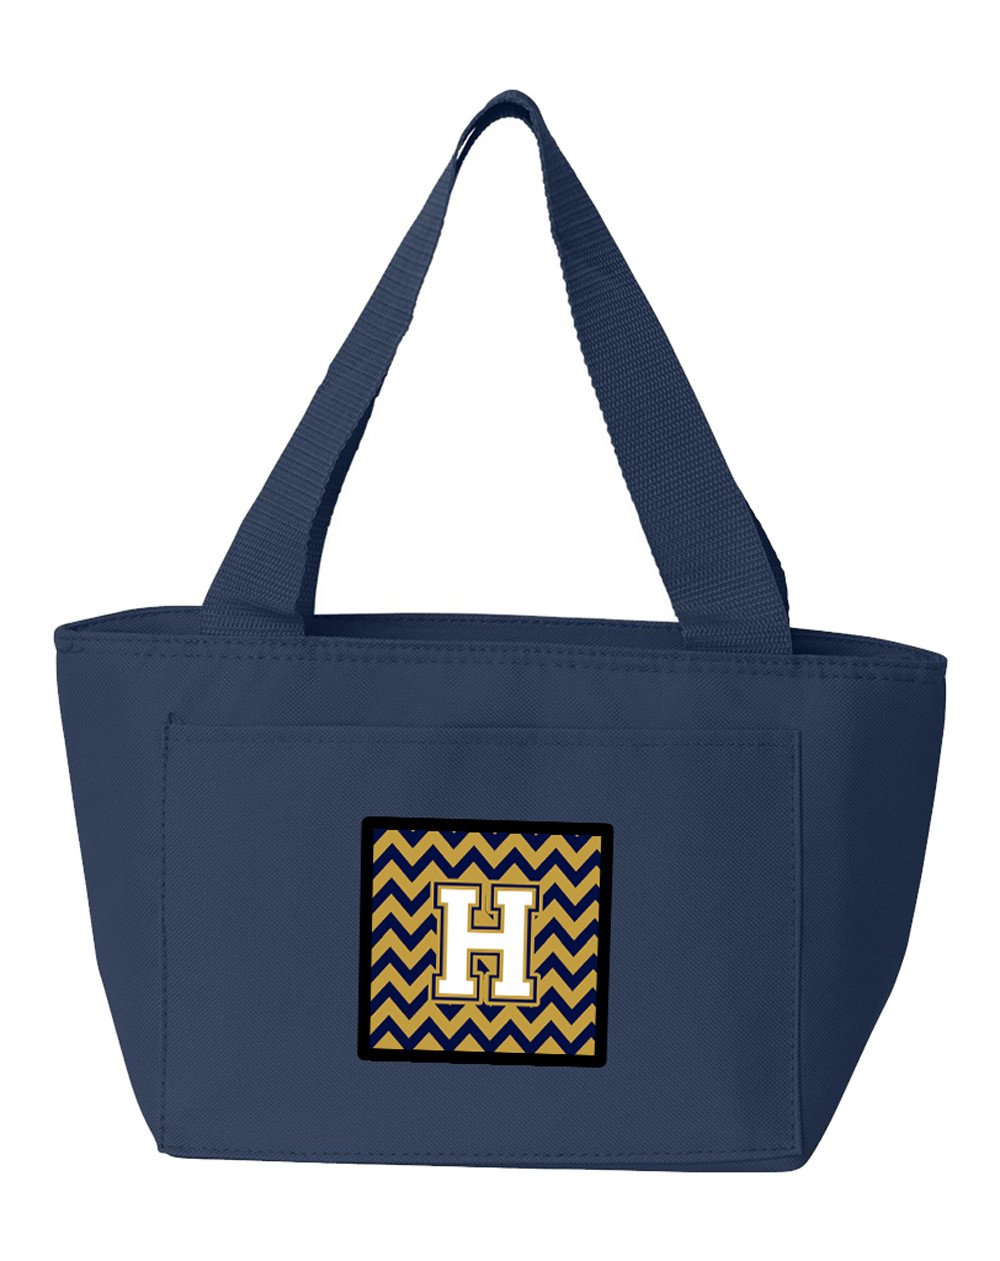 Letter H Chevron Navy Blue and Gold Lunch Bag CJ1057-HNA-8808 by Caroline's Treasures